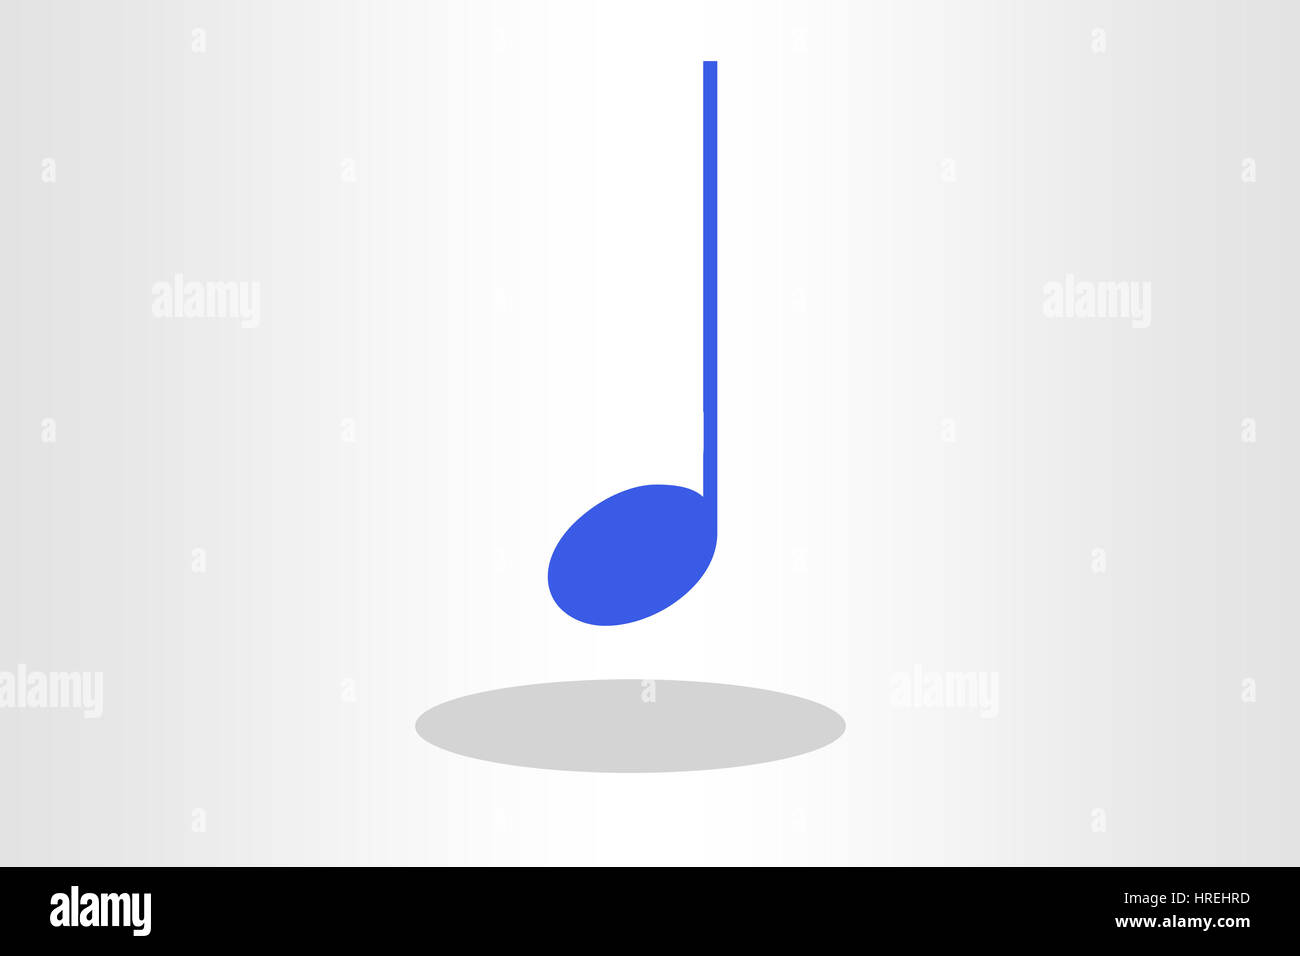 Illustration of quarter note Stock Photo: 134930977 - Alamy